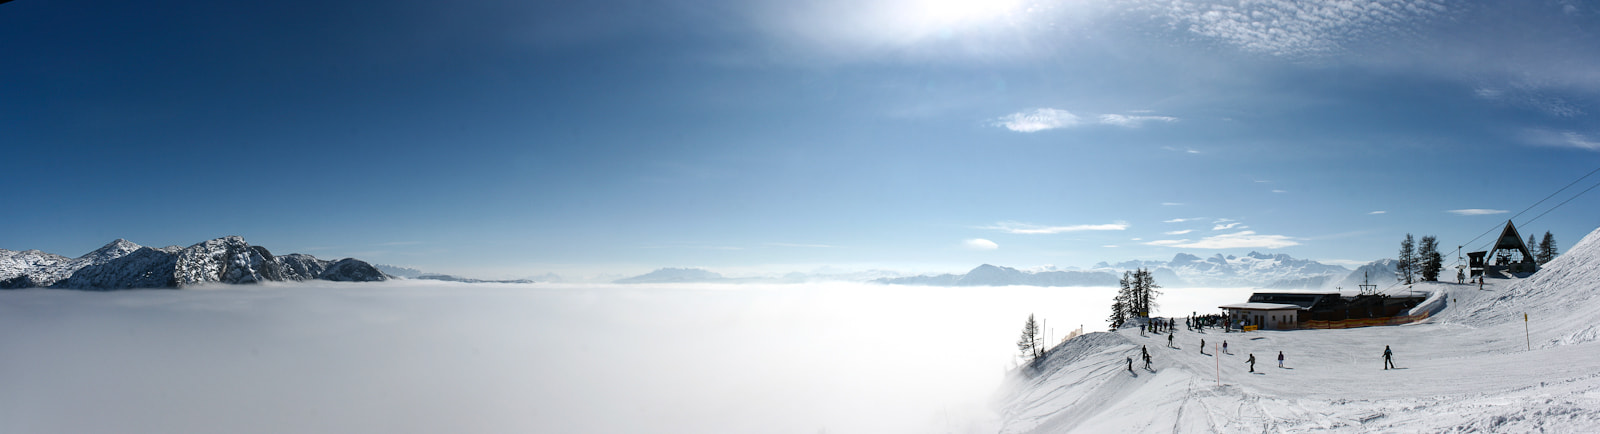 Photograph sea of clouds by Valentin Kouba on 500px